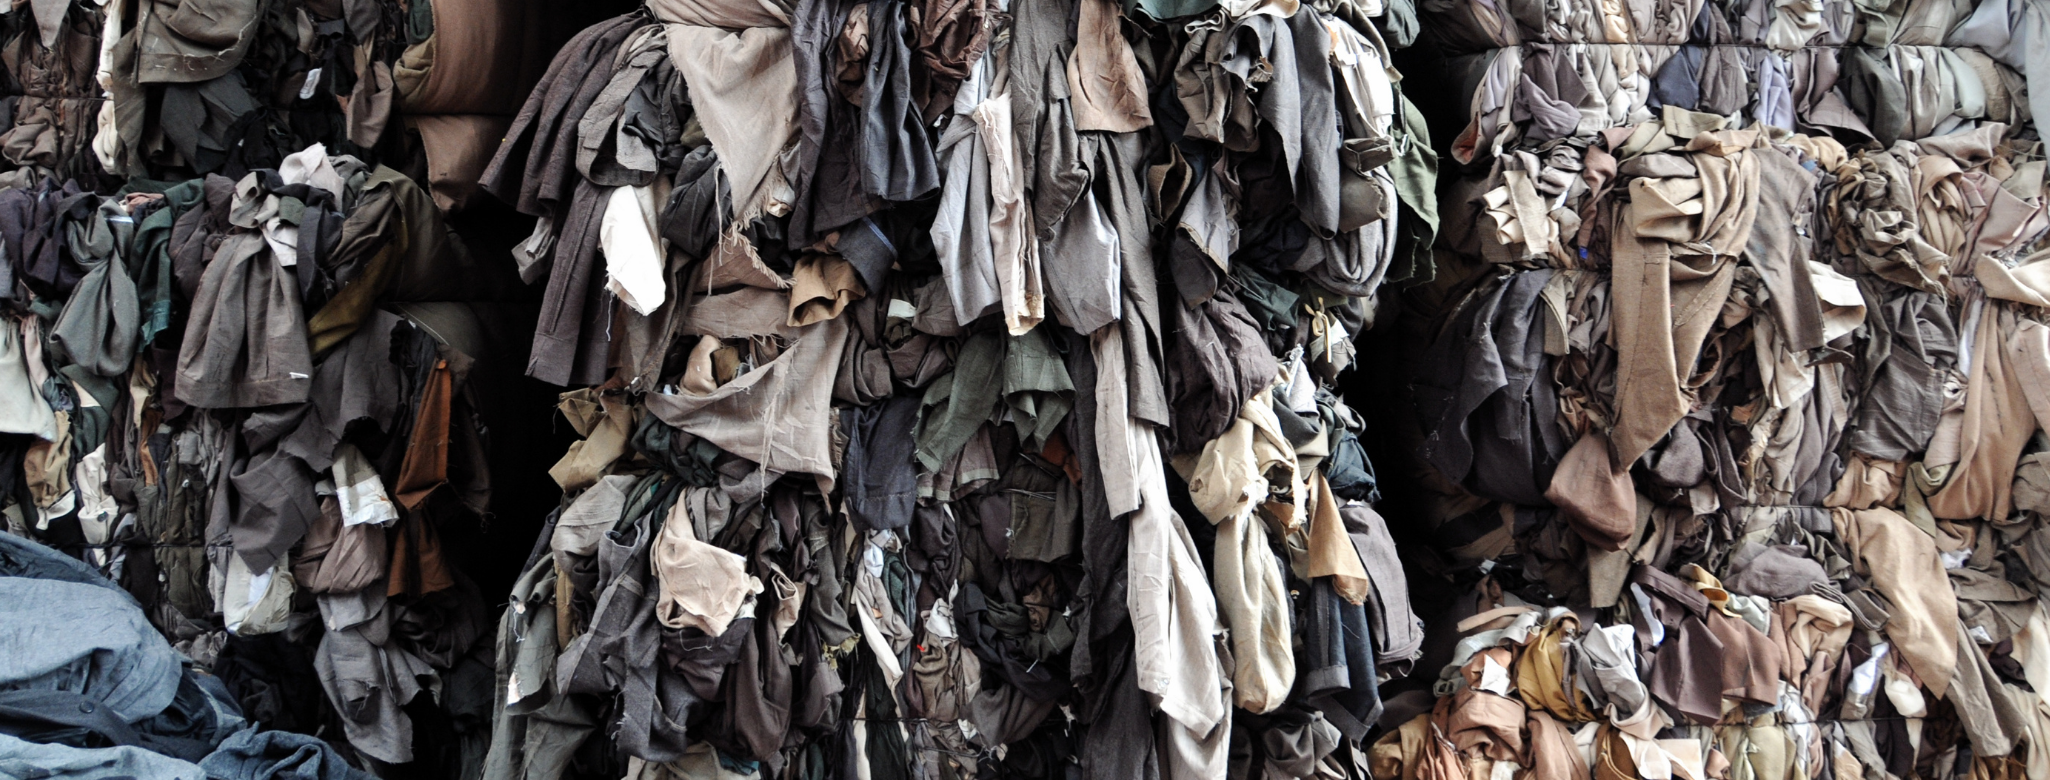 Textiles End Up in Landfills